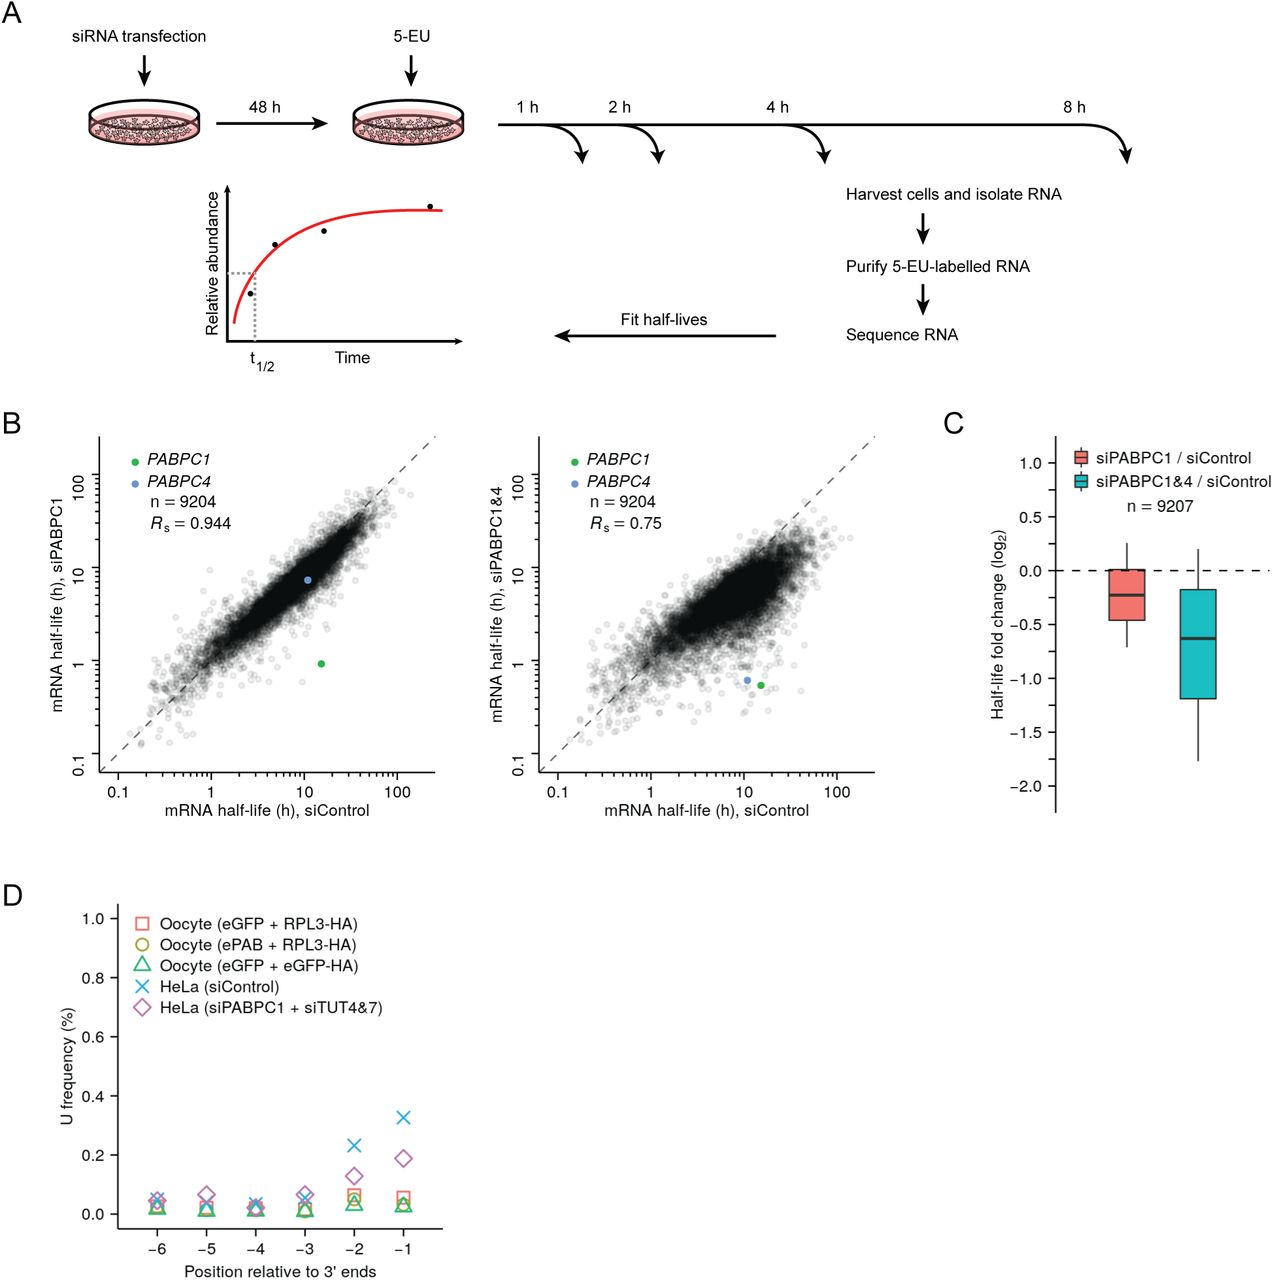 Measurements of mRNA half-lives in PABPC-depleted HeLa cells and terminal uridylation levels in frog oocytes. ( A ) Experimental scheme for measuring mRNA half-lives in HeLa cells. siRNA-transfected cells were incubated with <t>5-ethynyl</t> uridine (5-EU), and cytoplasmic mRNA was harvested at the indicated time points. 5-EU-labeled RNA was biotinylated, isolated, and sequenced, using spike-in standards to normalize results from different time points. For labeled mRNA isolated from each gene, the approach to equilibrium was then fit to obtain its half-life. ( B ) The effect of PABPC knockdown on cytoplasmic mRNA half-lives in HeLa cells. For each gene, the mRNA half-life in PABPC1-knockdown cells (left) or in double-knockdown cells (right) is compared to that in control cells. Points representing mRNAs from three genes RHOB , TSC22D3 , PLEKHO2 fell outside the plot areas. ( C ) Distribution of the effects of PABPC knockdown on mRNA stability. Boxplots summarize the fold differences of mRNA half-lives observed in ( B ) when comparing PABPC1-knockdown or double-knockdown cells with control cells. Each box-whisker shows the 10 th , 25 th , 50 th , 75 th and 90 th percentile. ( D ) Minimal terminal uridylation activity in frog oocytes. Plotted are the fractions of cytoplasmic mRNAs containing uridines near their termini, as detected in frog oocytes injected with mRNAs overexpressing the indicated proteins using tail-length sequencing. For comparison, results from HeLa cells transfected with the indicated siRNAs are replotted from Figure 5D .